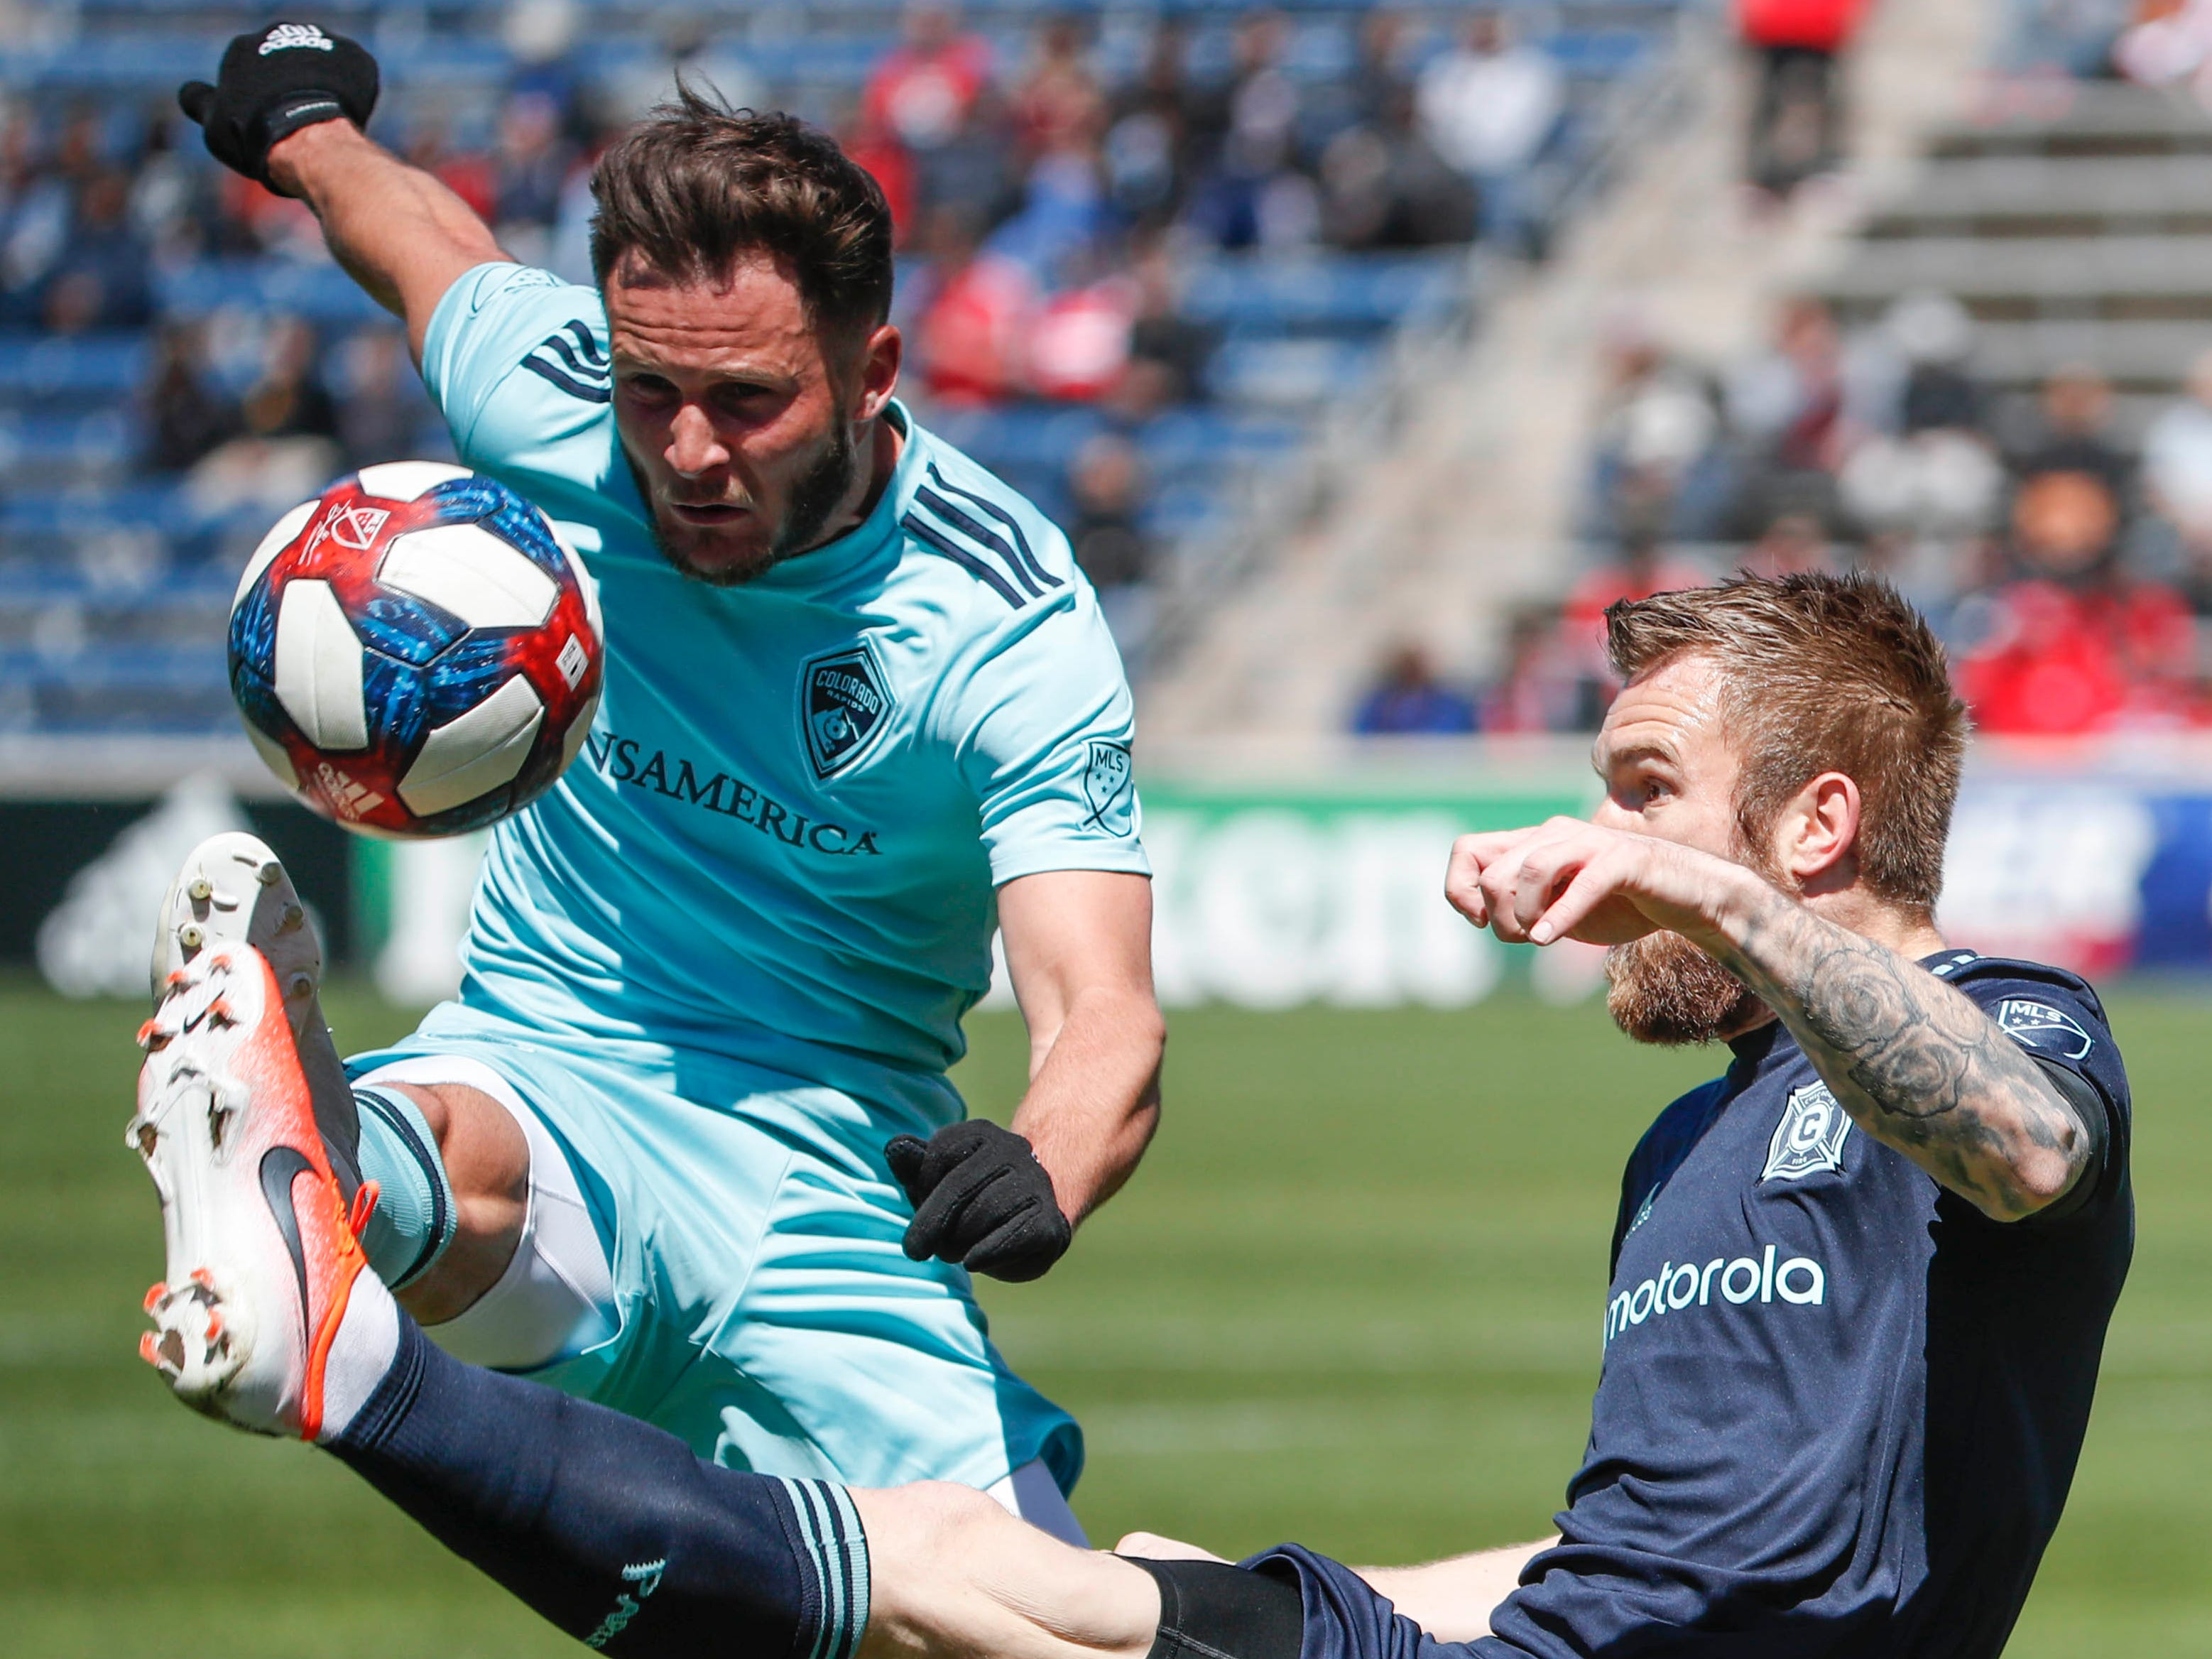 April 20: Chicago Fire forward Aleksandar Katai (10) battles for the ball with Colorado Rapids defender Keegan Rosenberry during the first half at Bridgeview Stadium. Chicago won the game, 4-1.